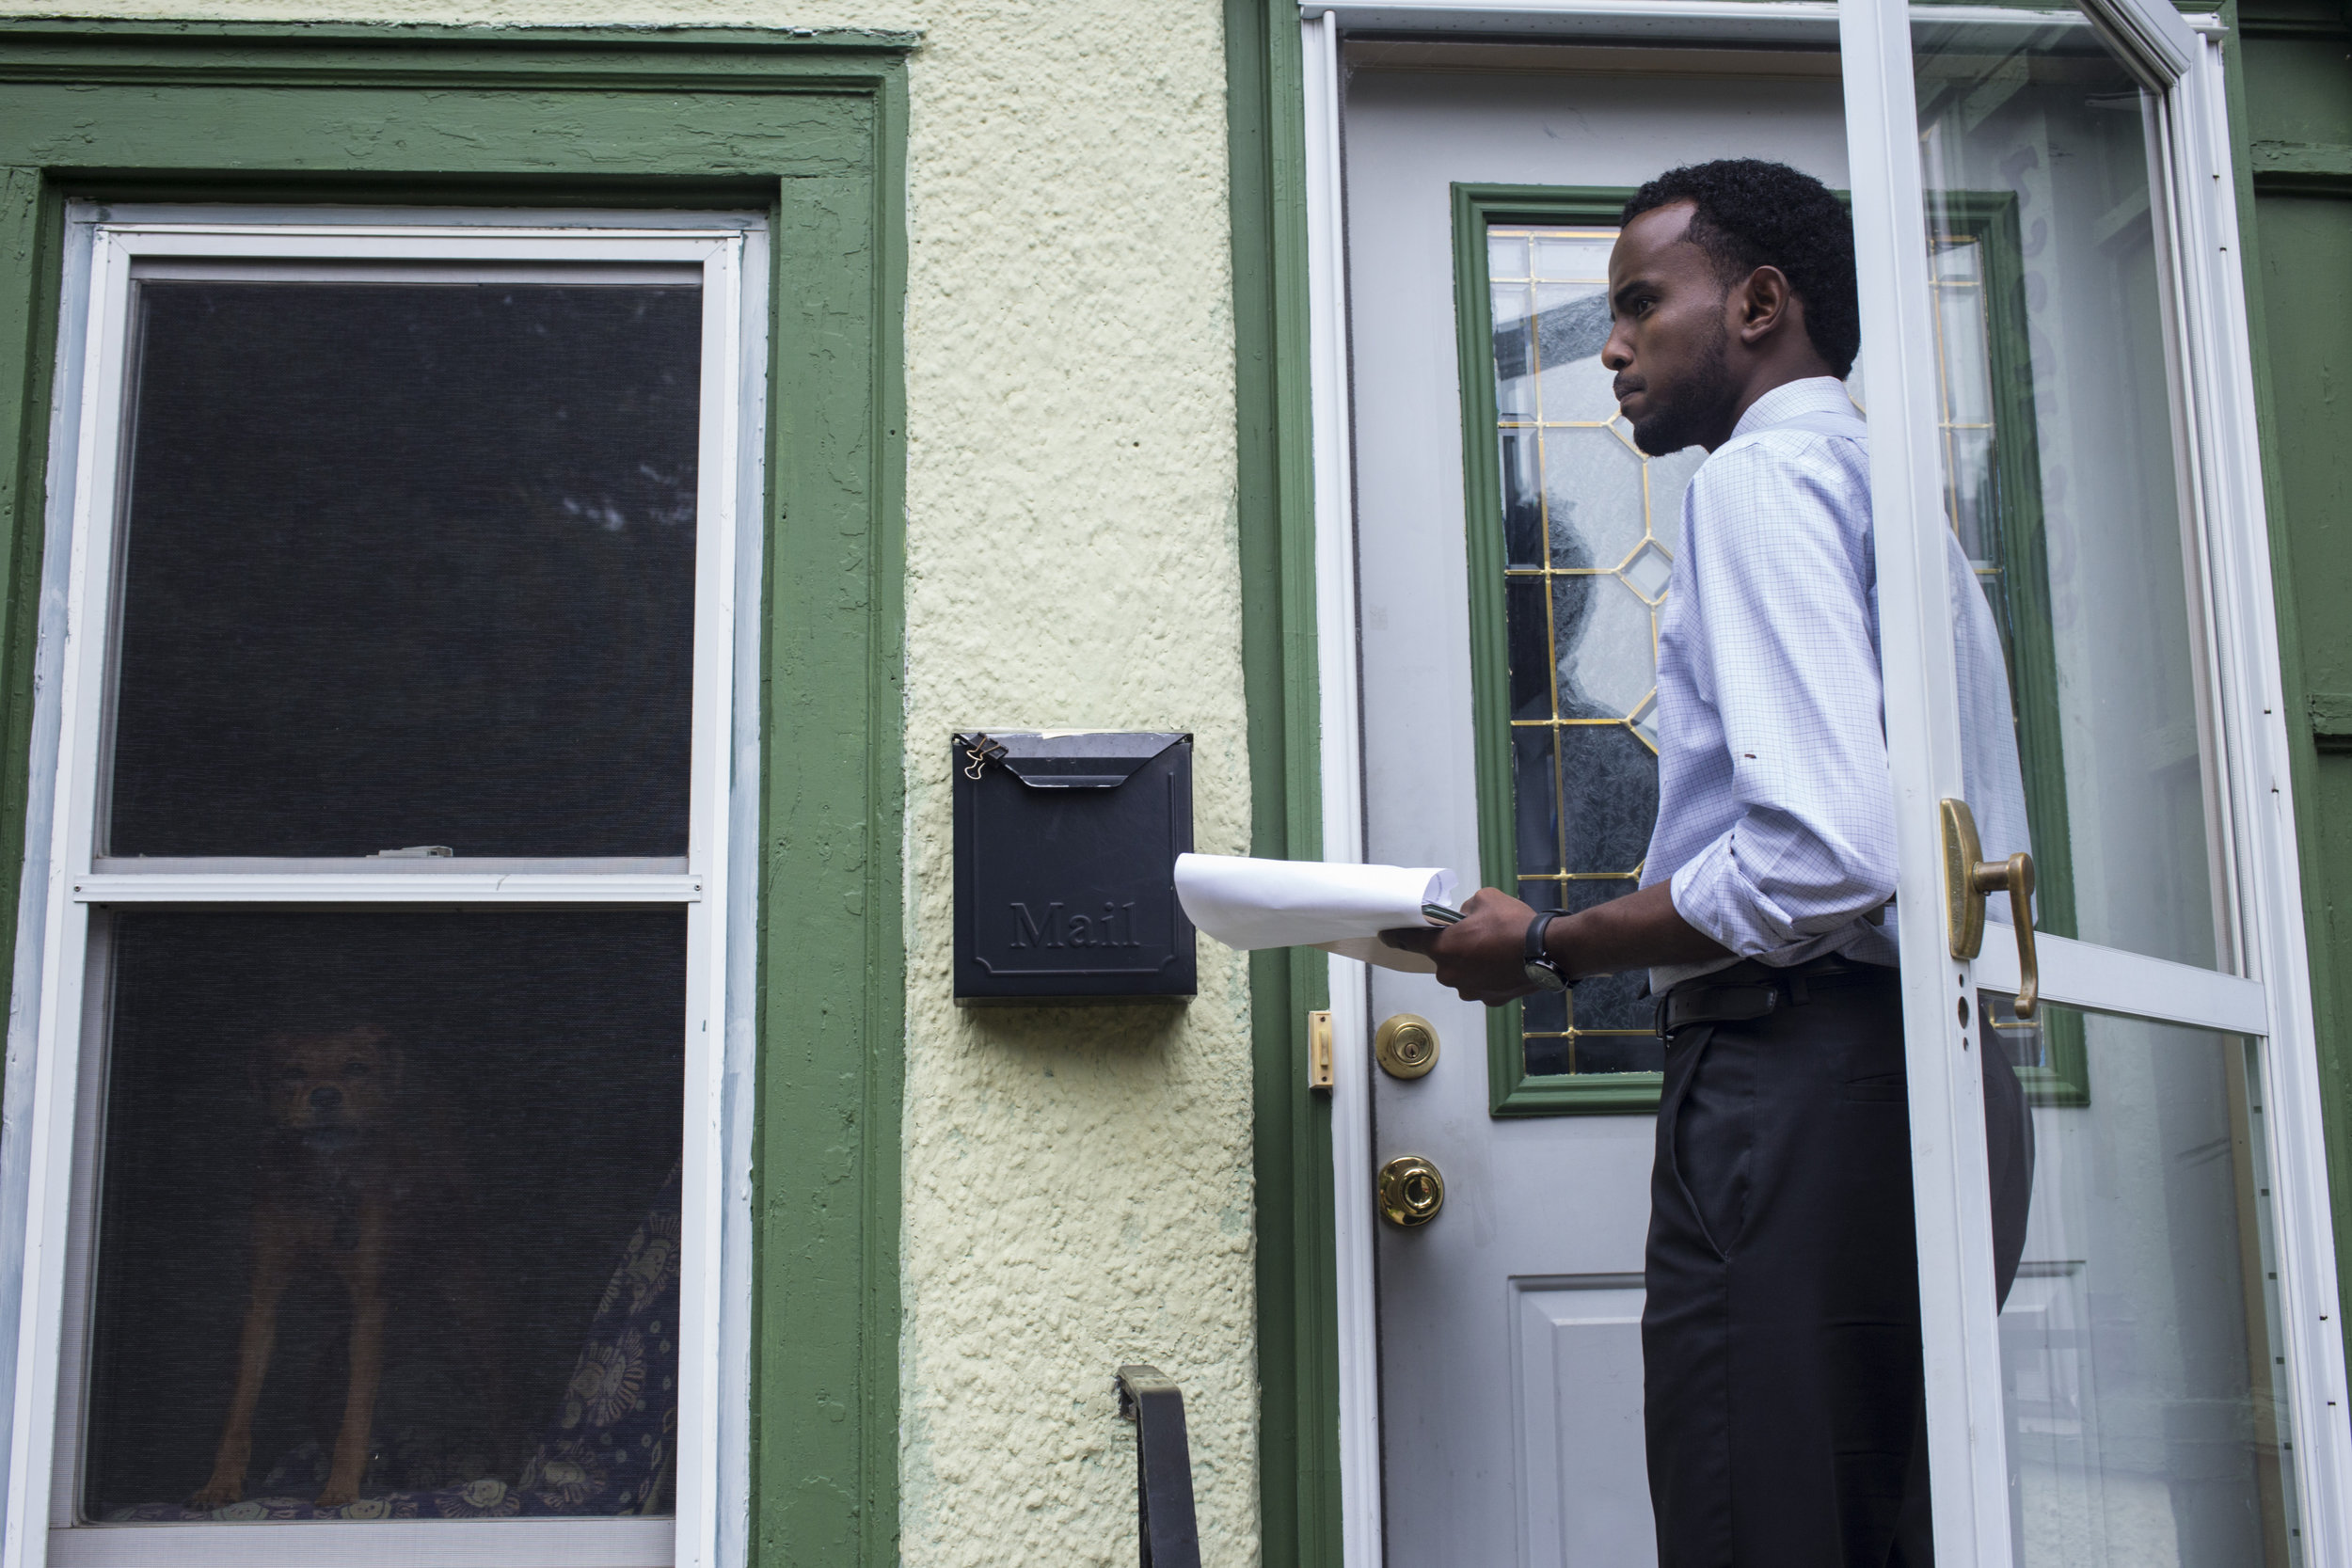 AK Hassan, 26, goes door to door to people's homes while campaigning for Minneapolis Park Board in, Longfellow, Minneapolis, Minn., on Saturday, October 7, 2017.Hassan was eventually elected becoming the first Somali and youngest person to ever serve on the park board.